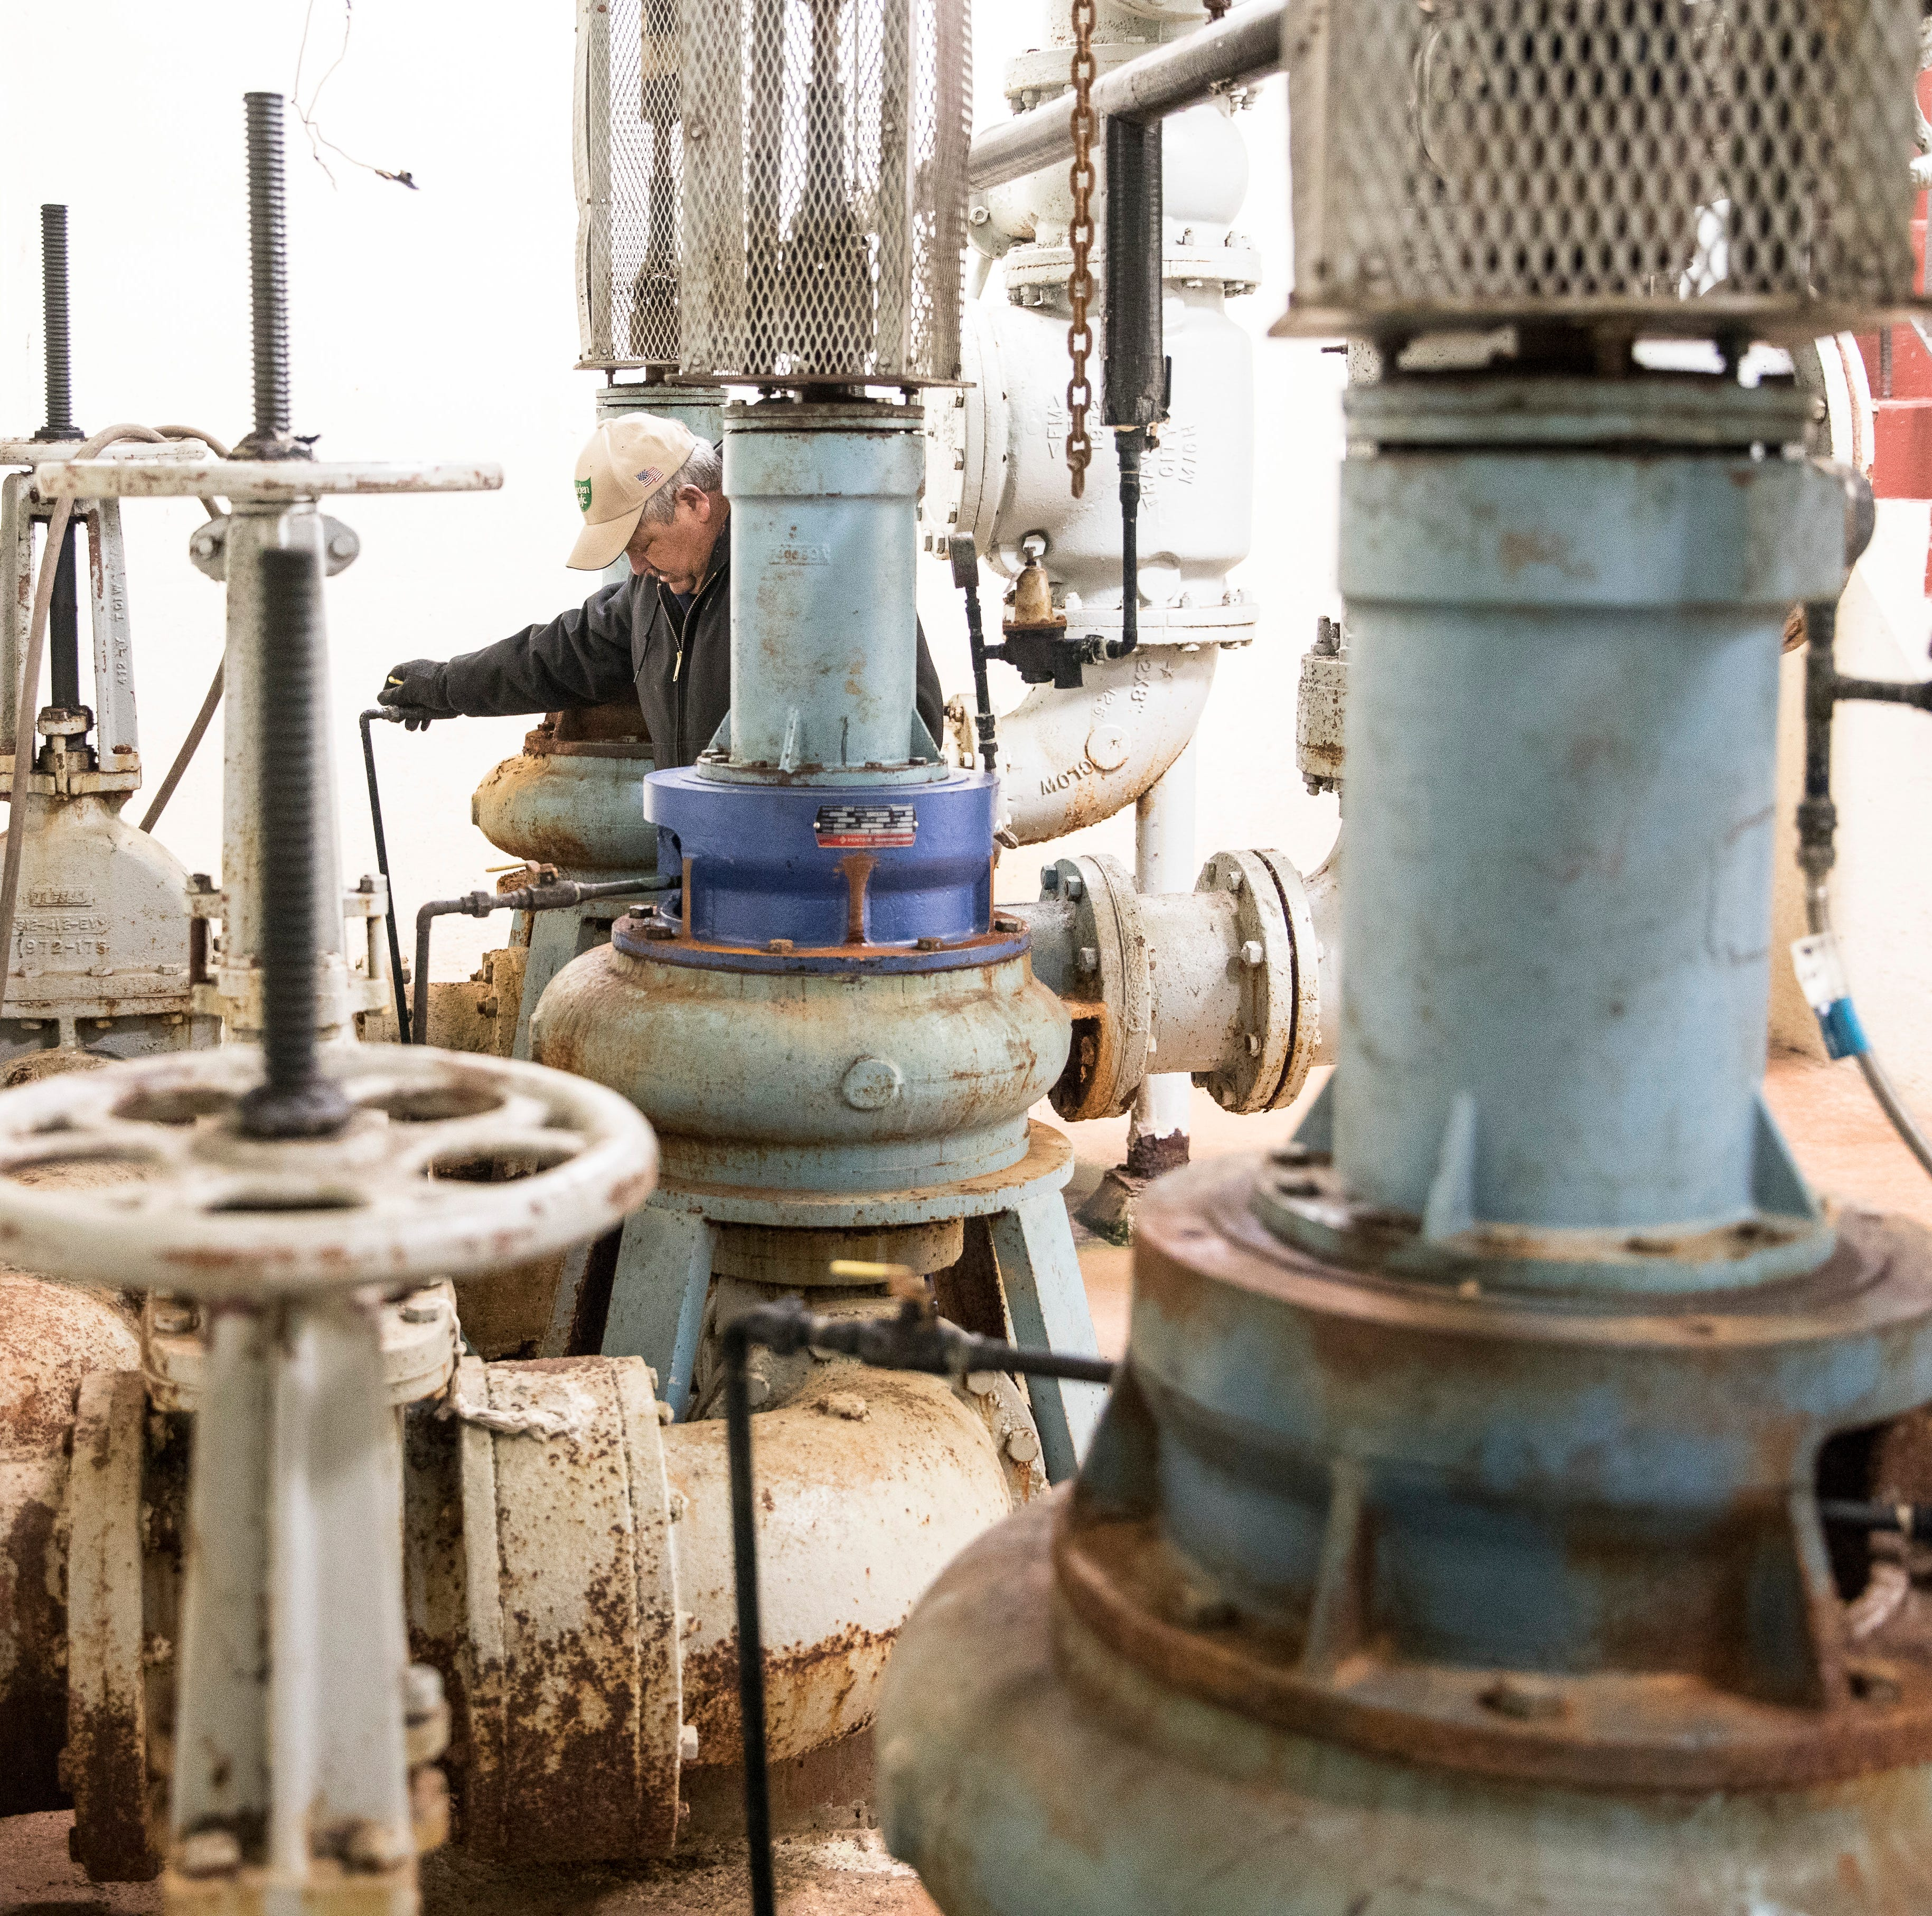 Significant problems continue at wastewater treatment plant